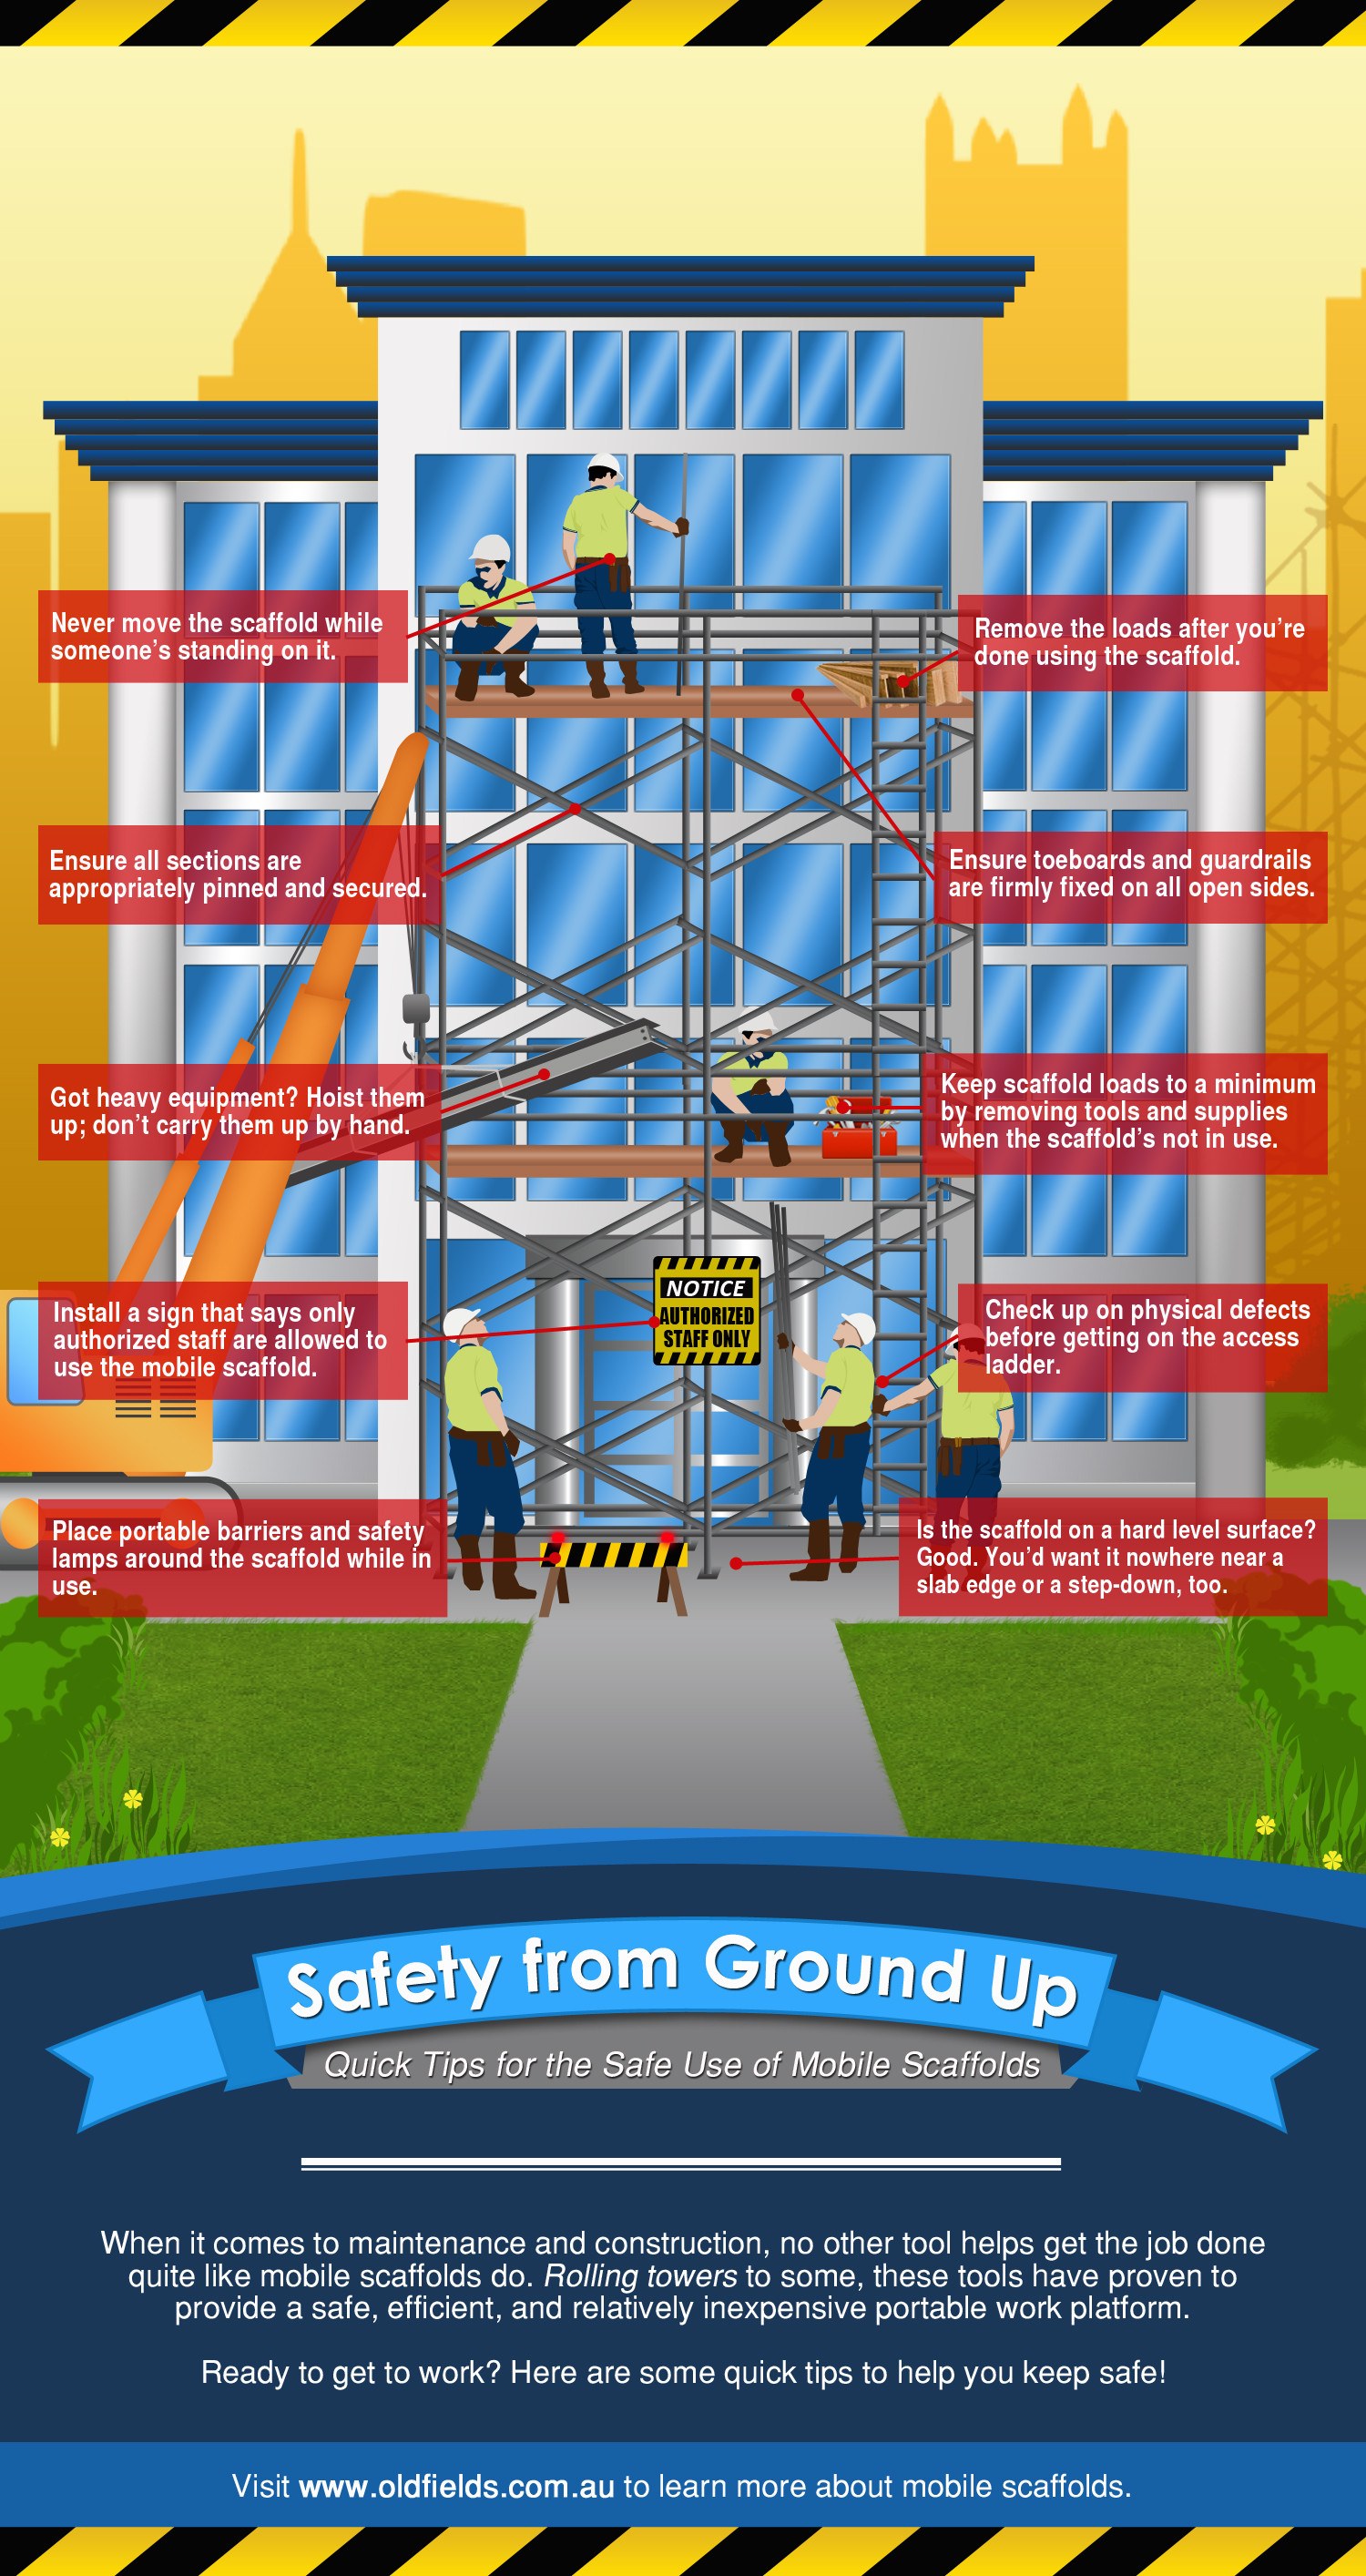 Safety from Ground Up - Quick Tips for the Safe Use of Mobile Scaffolds Infographic